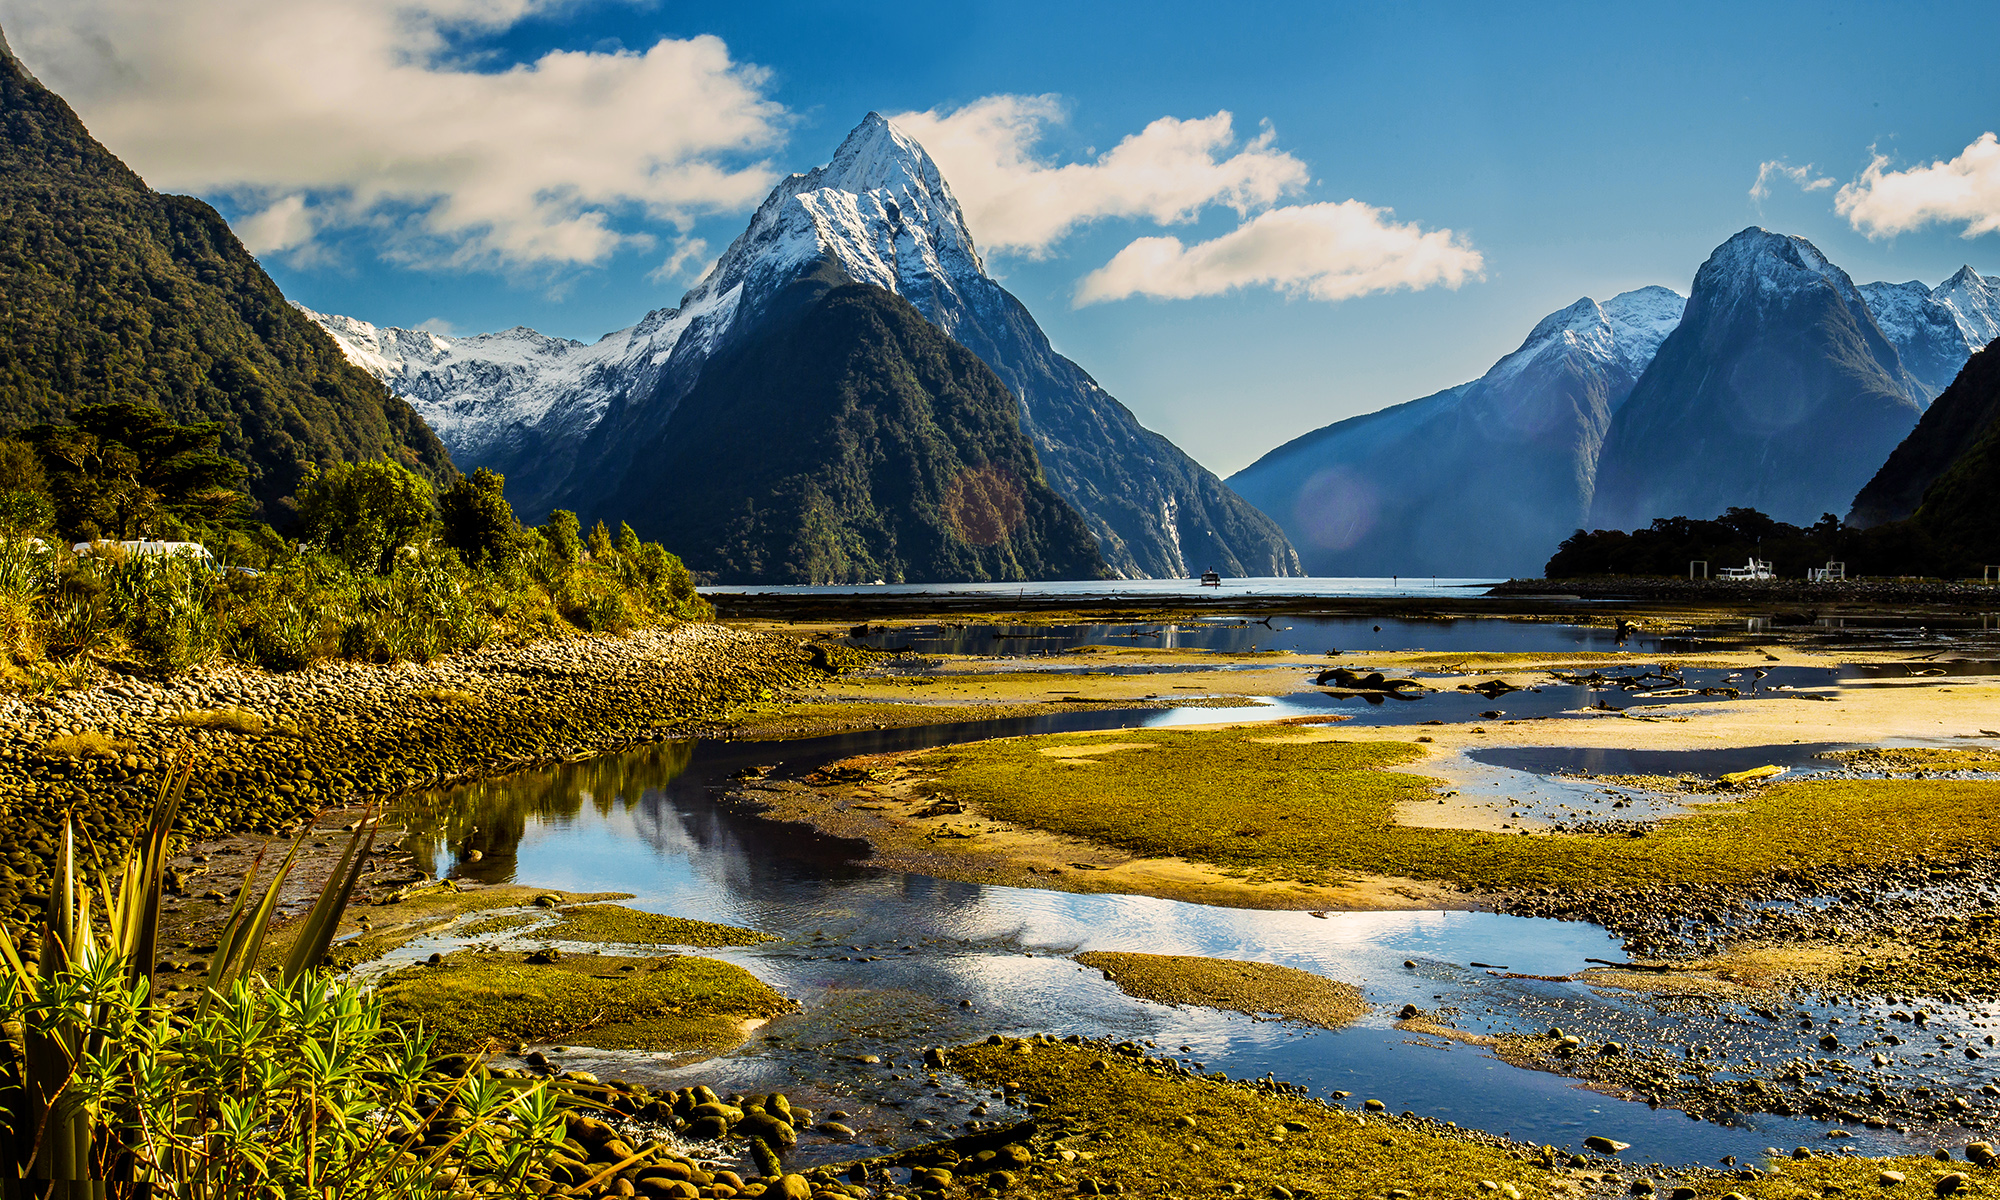 The Great Mitre Peak at Milford Sound